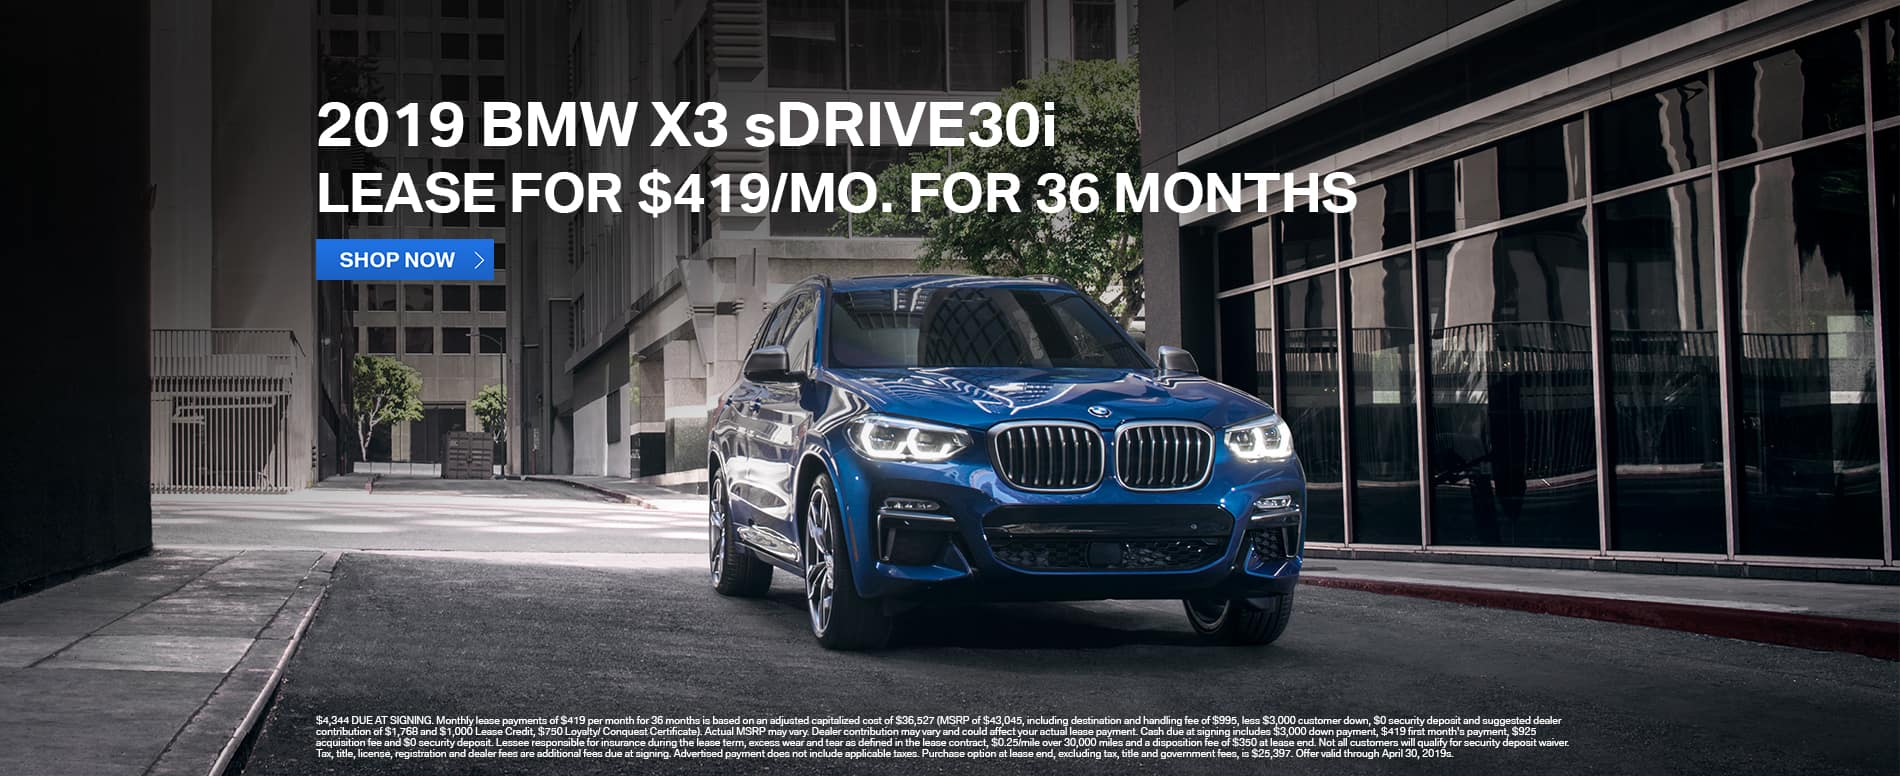 lease-2019-bmw-x3-sdrive30-419-mo-beaumont